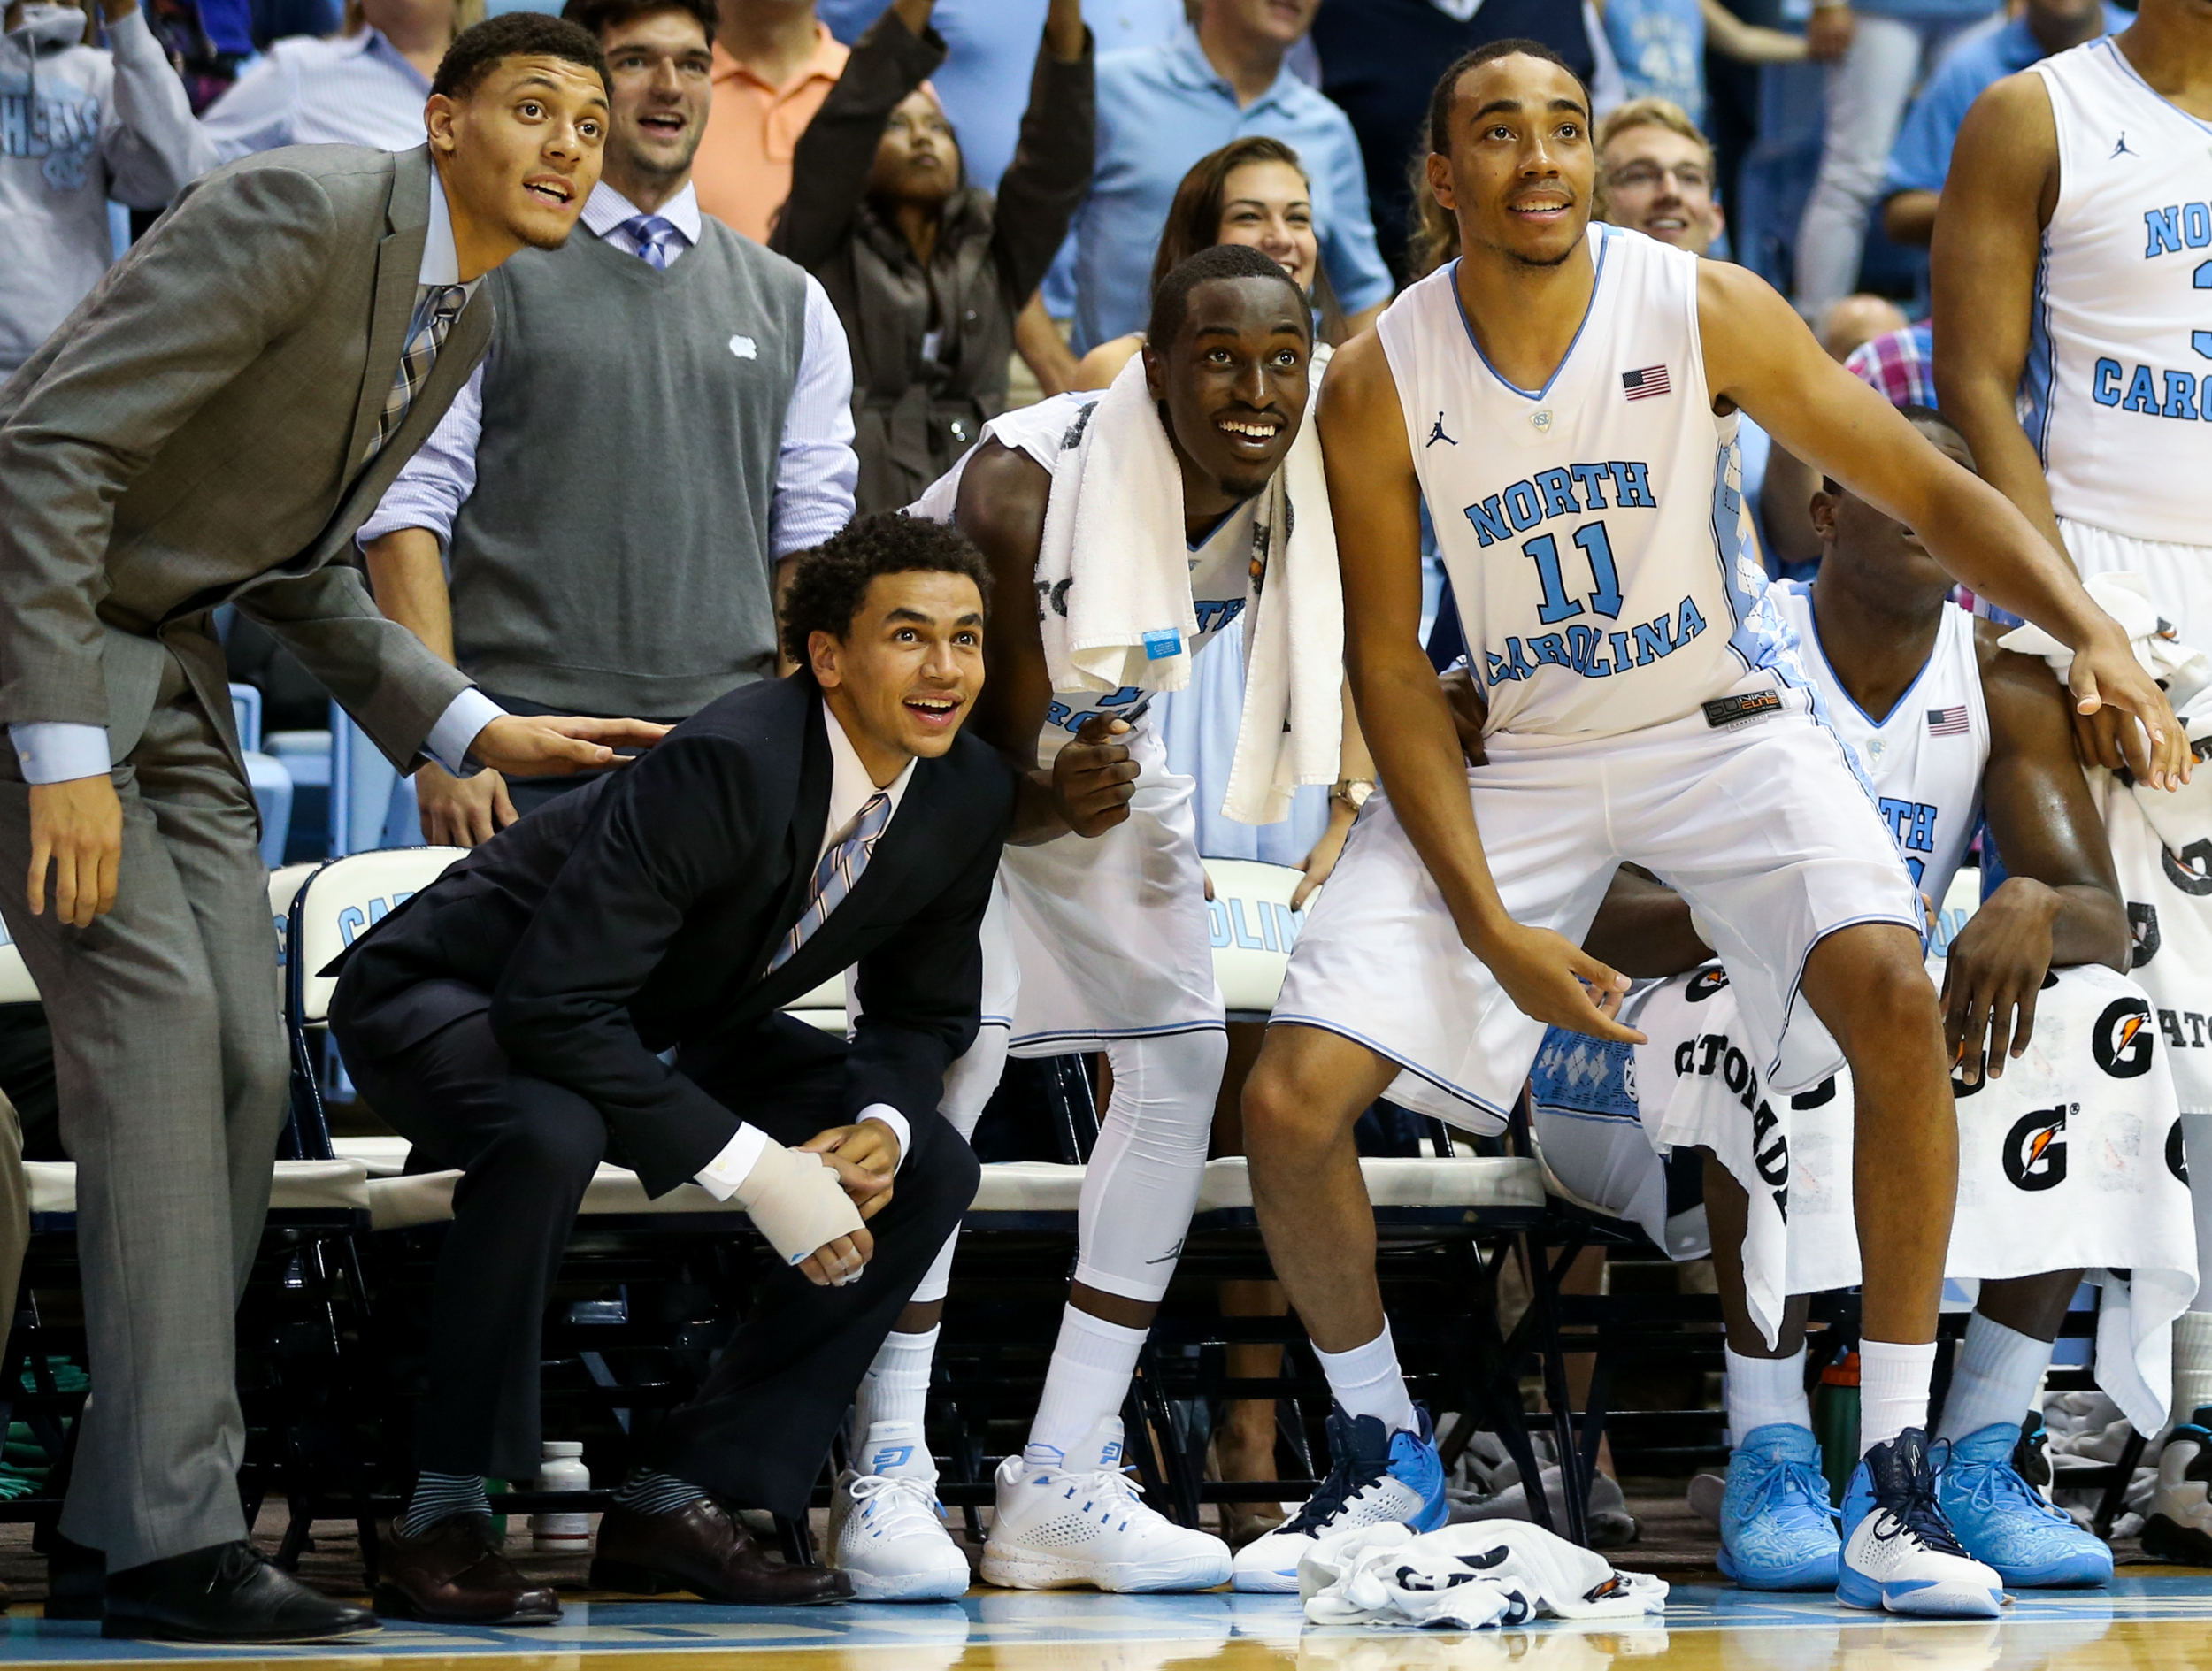 From left, Justin Jackson, Marcus Paige, Theo Pinson and Brice Johnson cheer from the bench during their exhibition game at the Dean Smith Center on Friday, Nov. 6, 2015. UNC defeated Guilford 99-49.